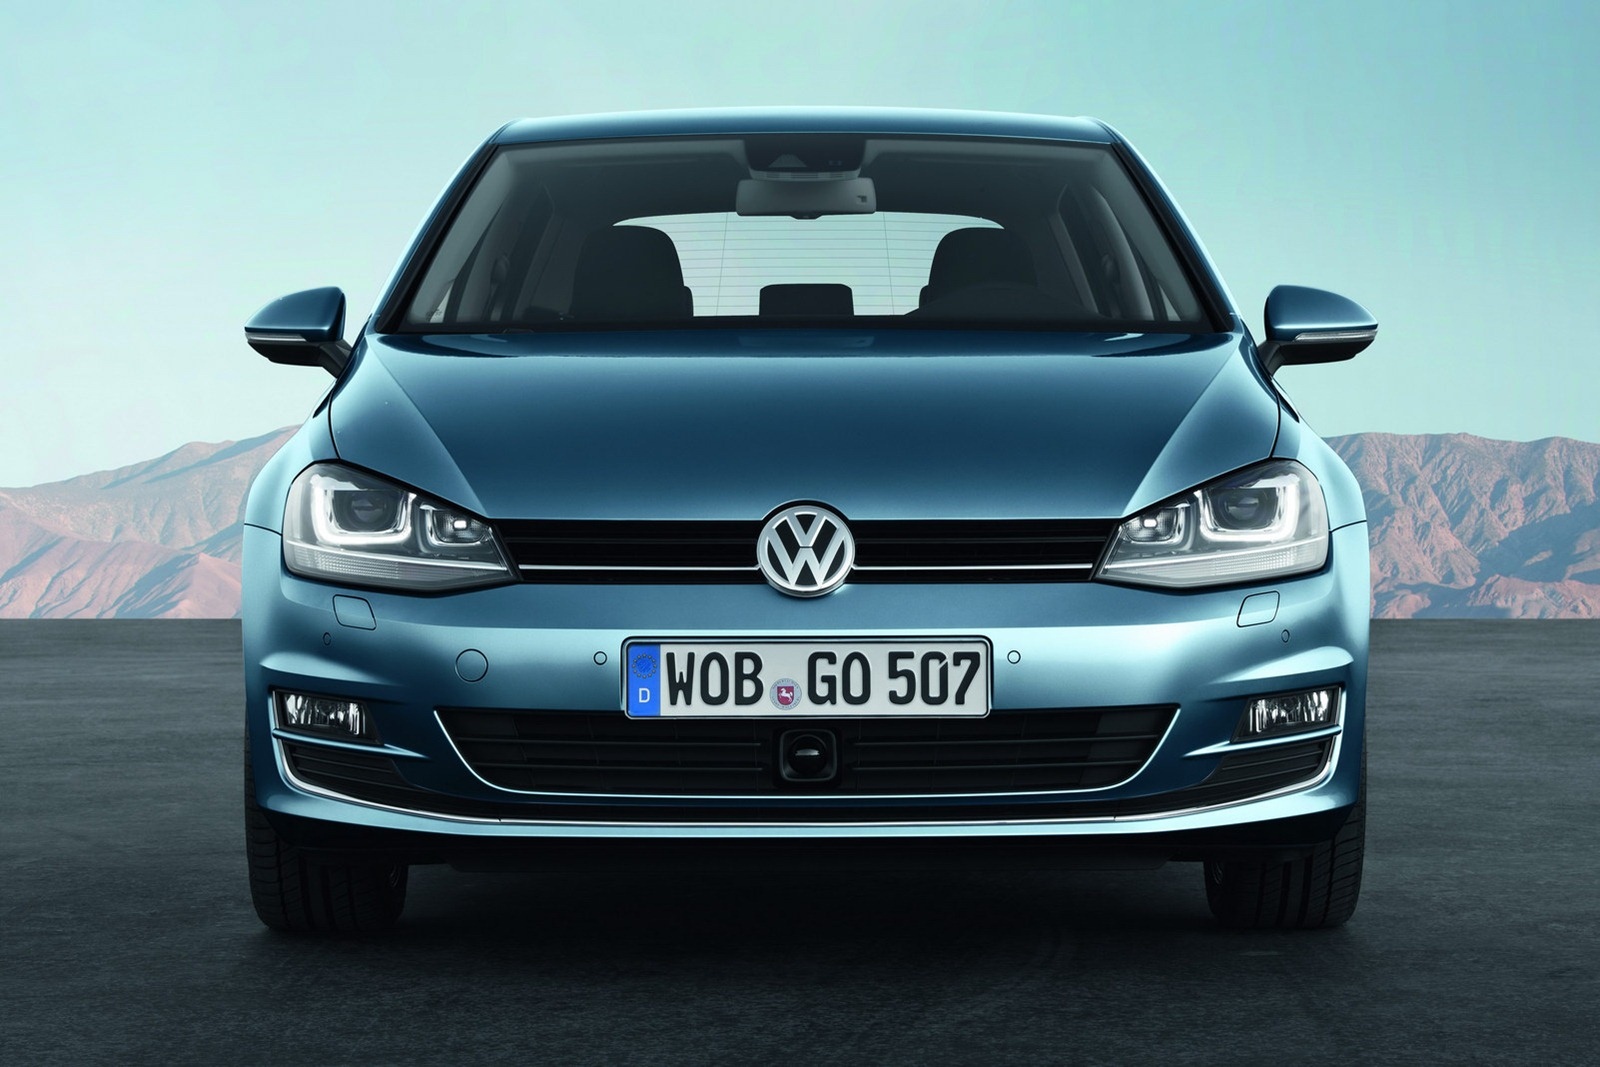 Volkswagen is going 'carbon' for the Golf GTI